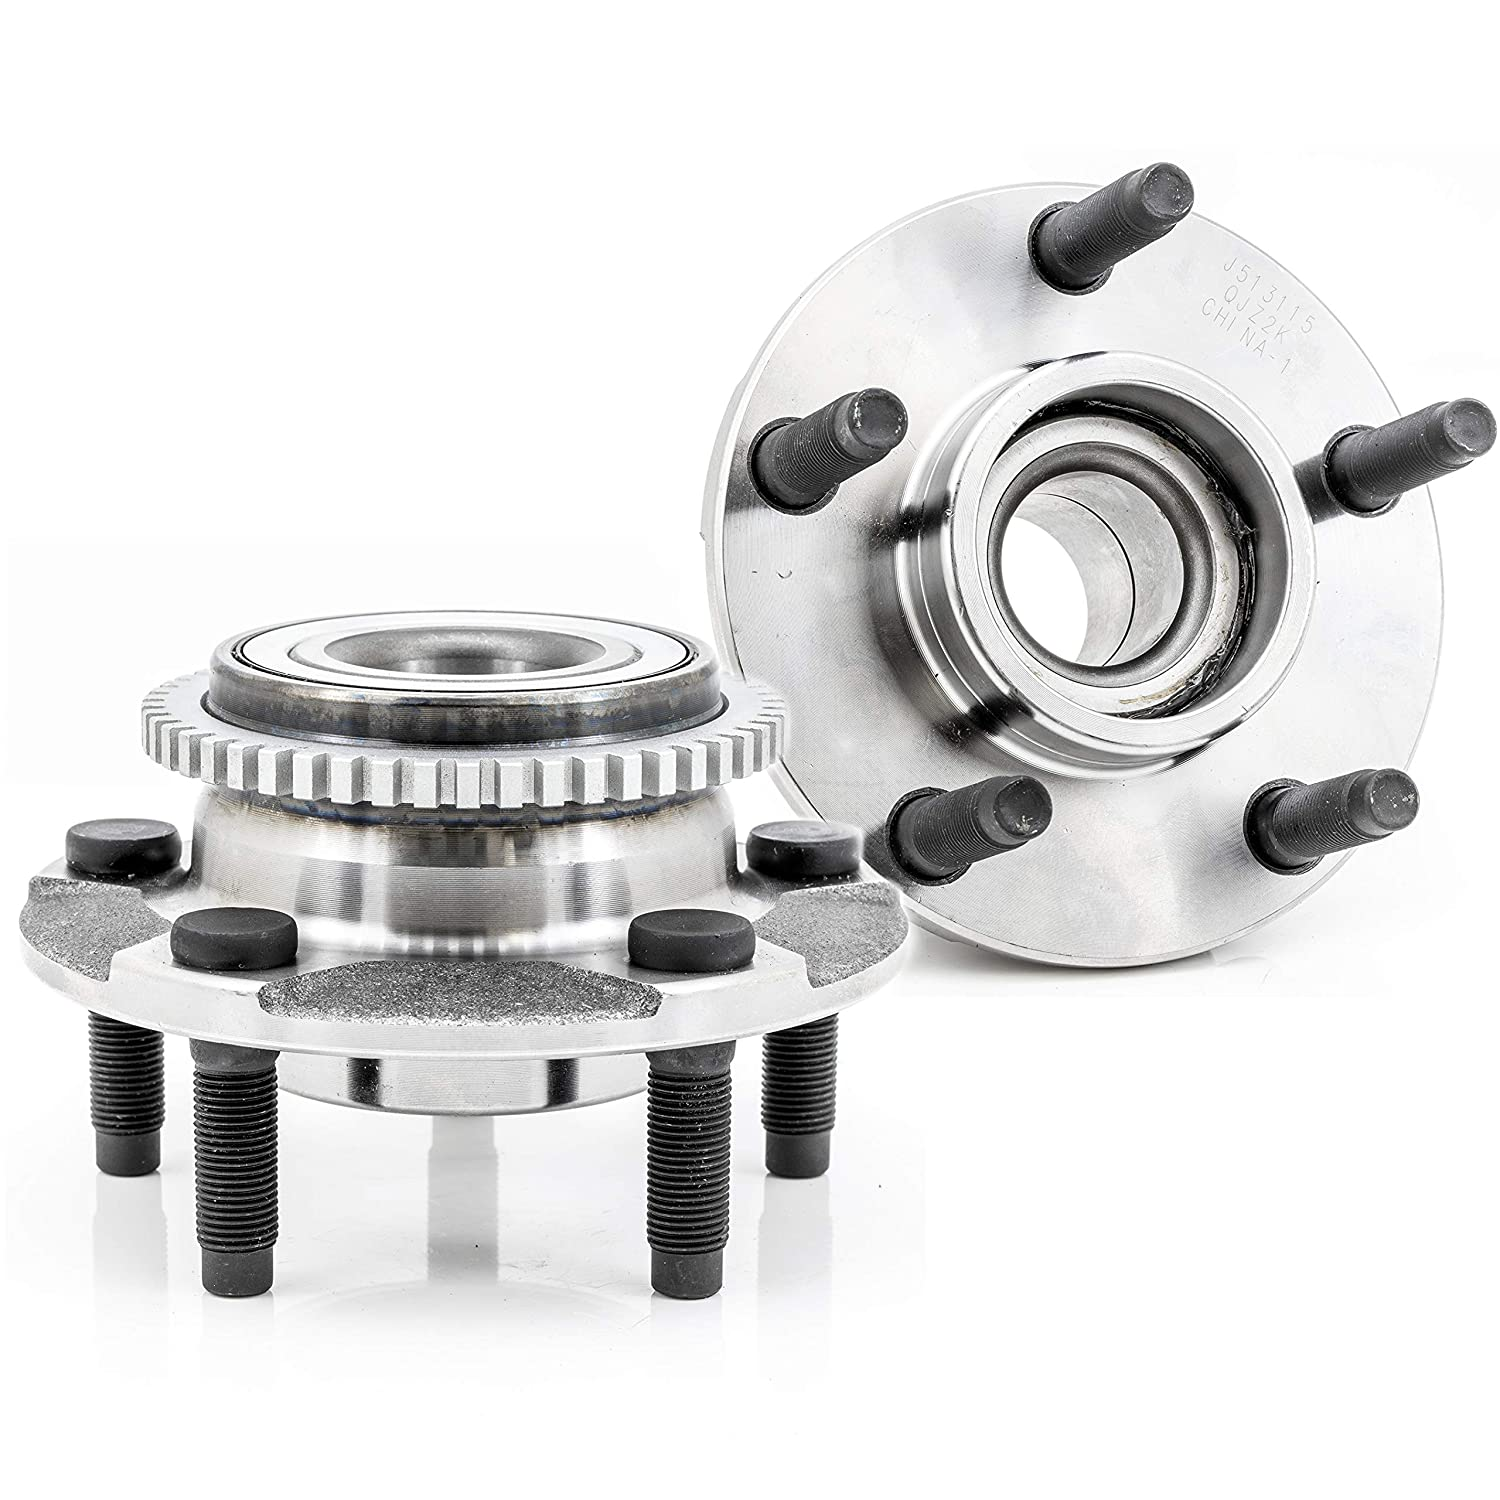 2-Pack//Pair 513115 Front Driver and Passenger Side Wheel Hub and Bearing Assembly for 1994-2004 Ford Mustang QJZ